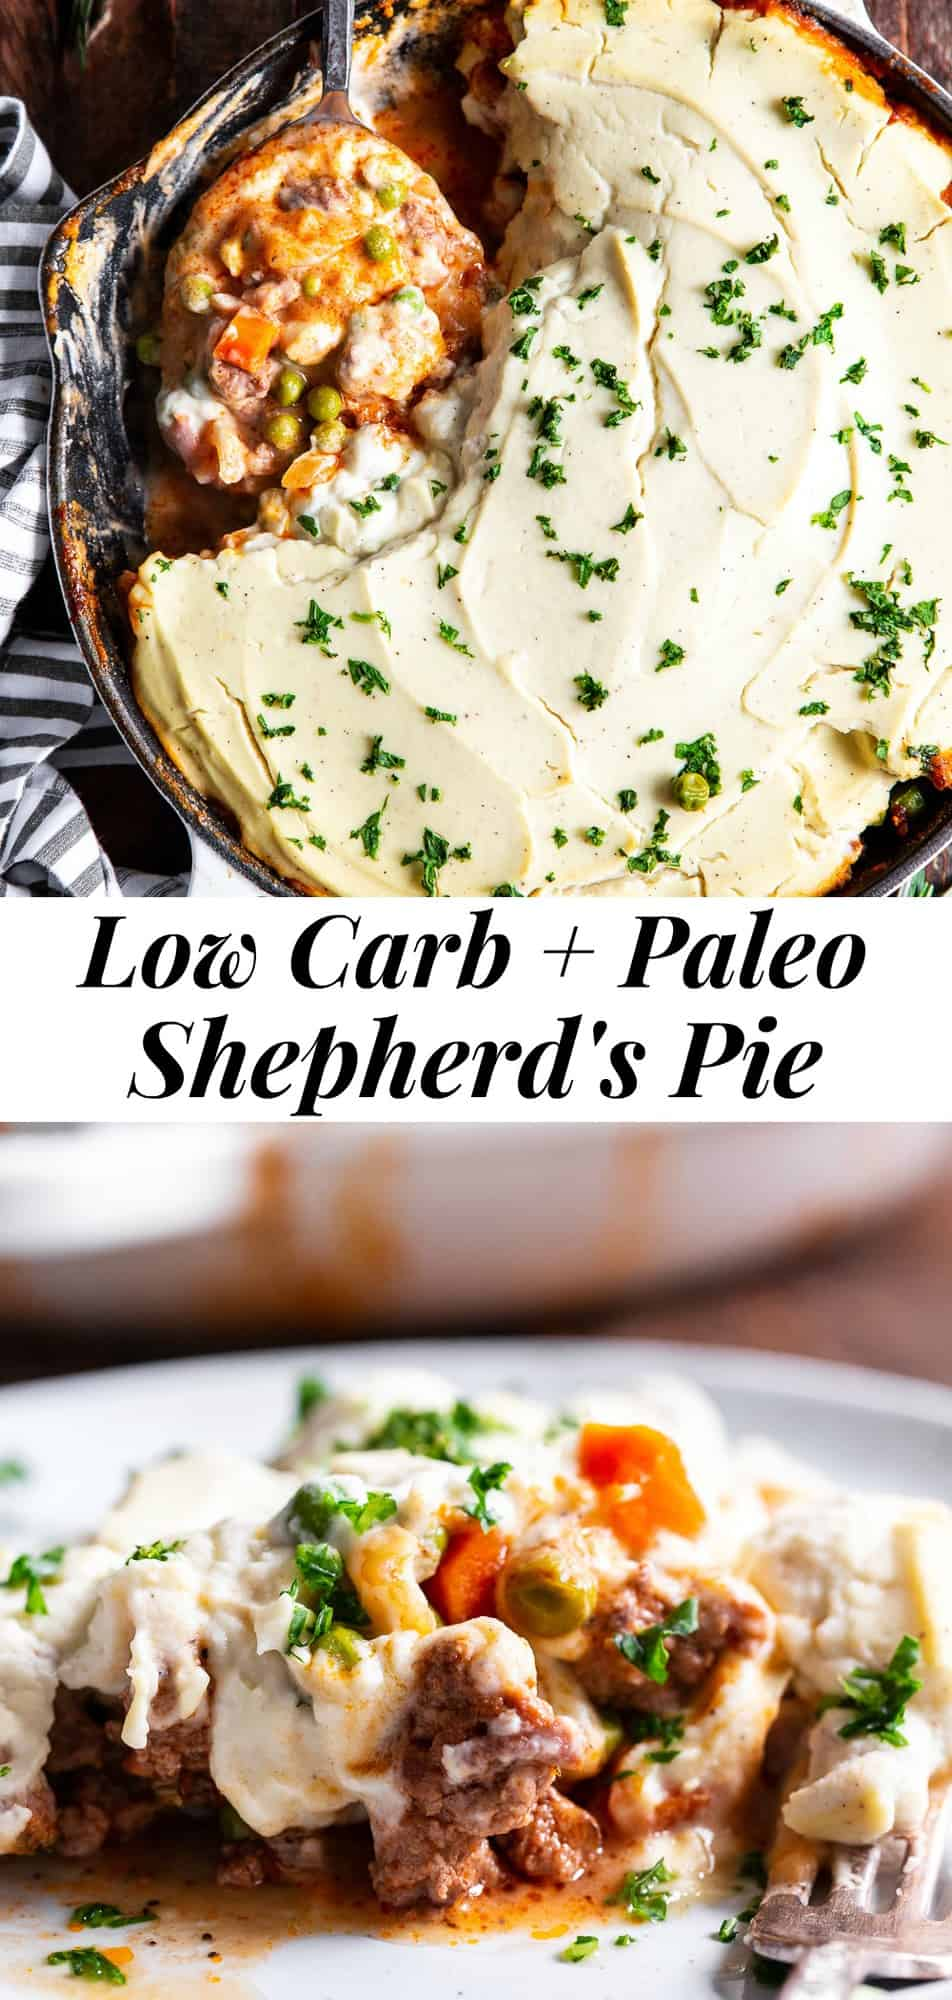 This Low Carb Shepherd's Pie is classic, cozy comfort food for cold winter days!  It's Whole30 compliant, dairy free, keto friendly and kid approved.  A flavorful, hearty ground meat and veggie mixture is topped with creamy mashed cauliflower and baked until golden brown and bubbling.  #paleo #keto #lowcarb #cleaneating #whole30